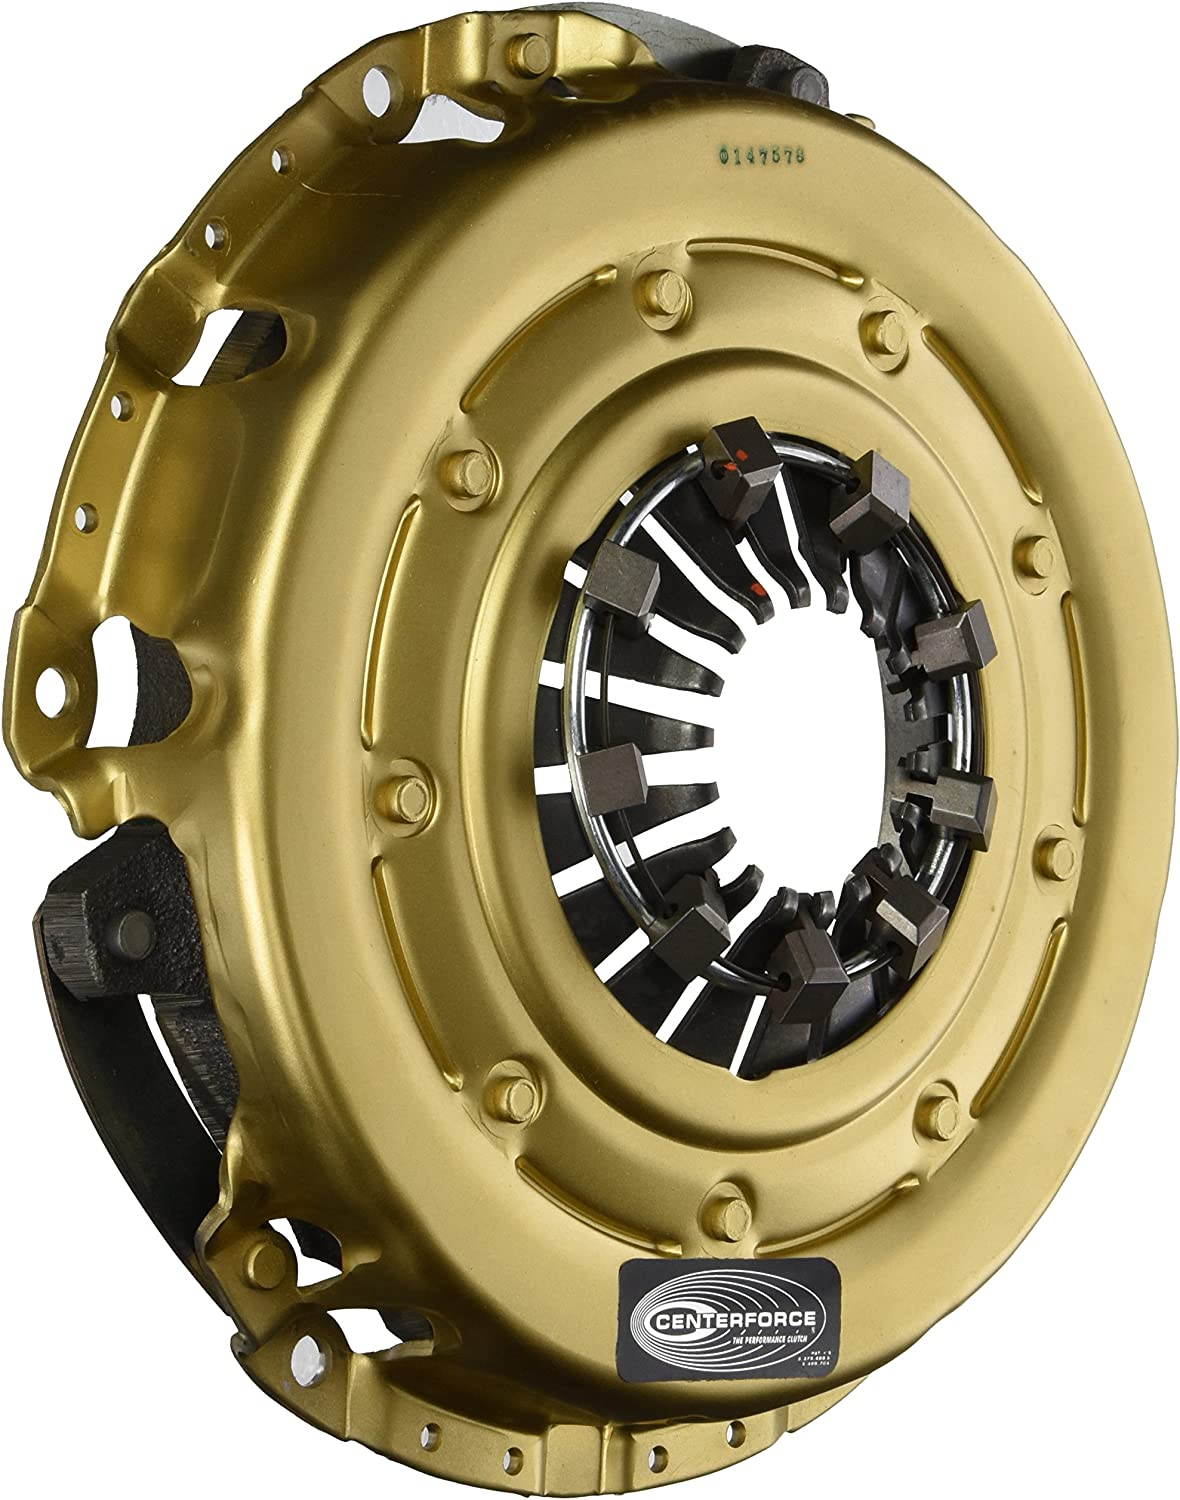 Centerforce CF360056 Spring new work I Clutch Jacksonville Mall Pressure Plate